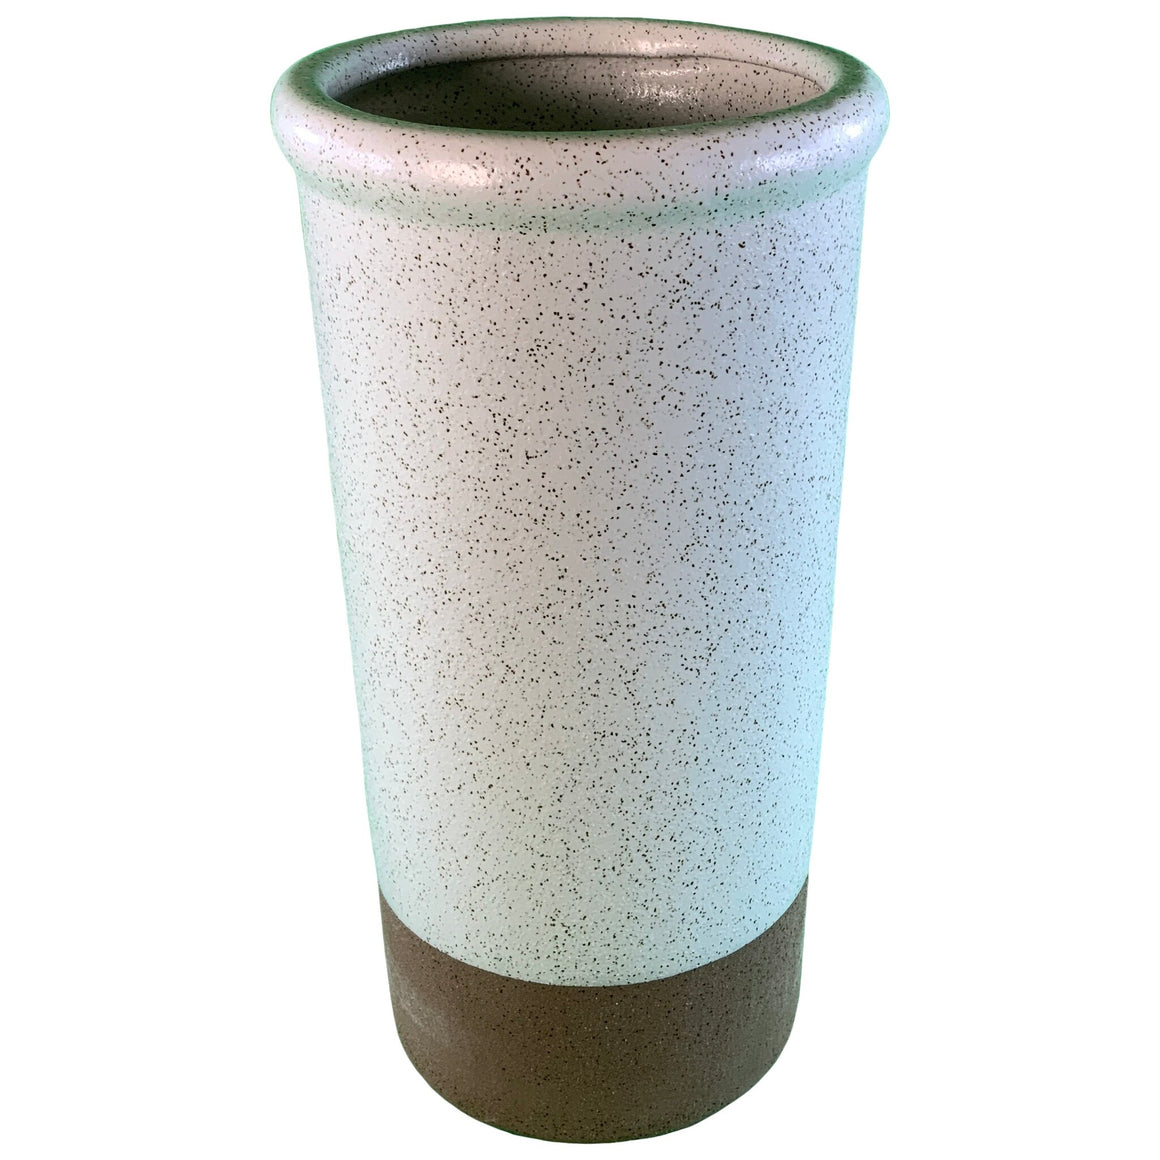 Stoneware Vase Speckled Glaze Large - Smith & Hawken™